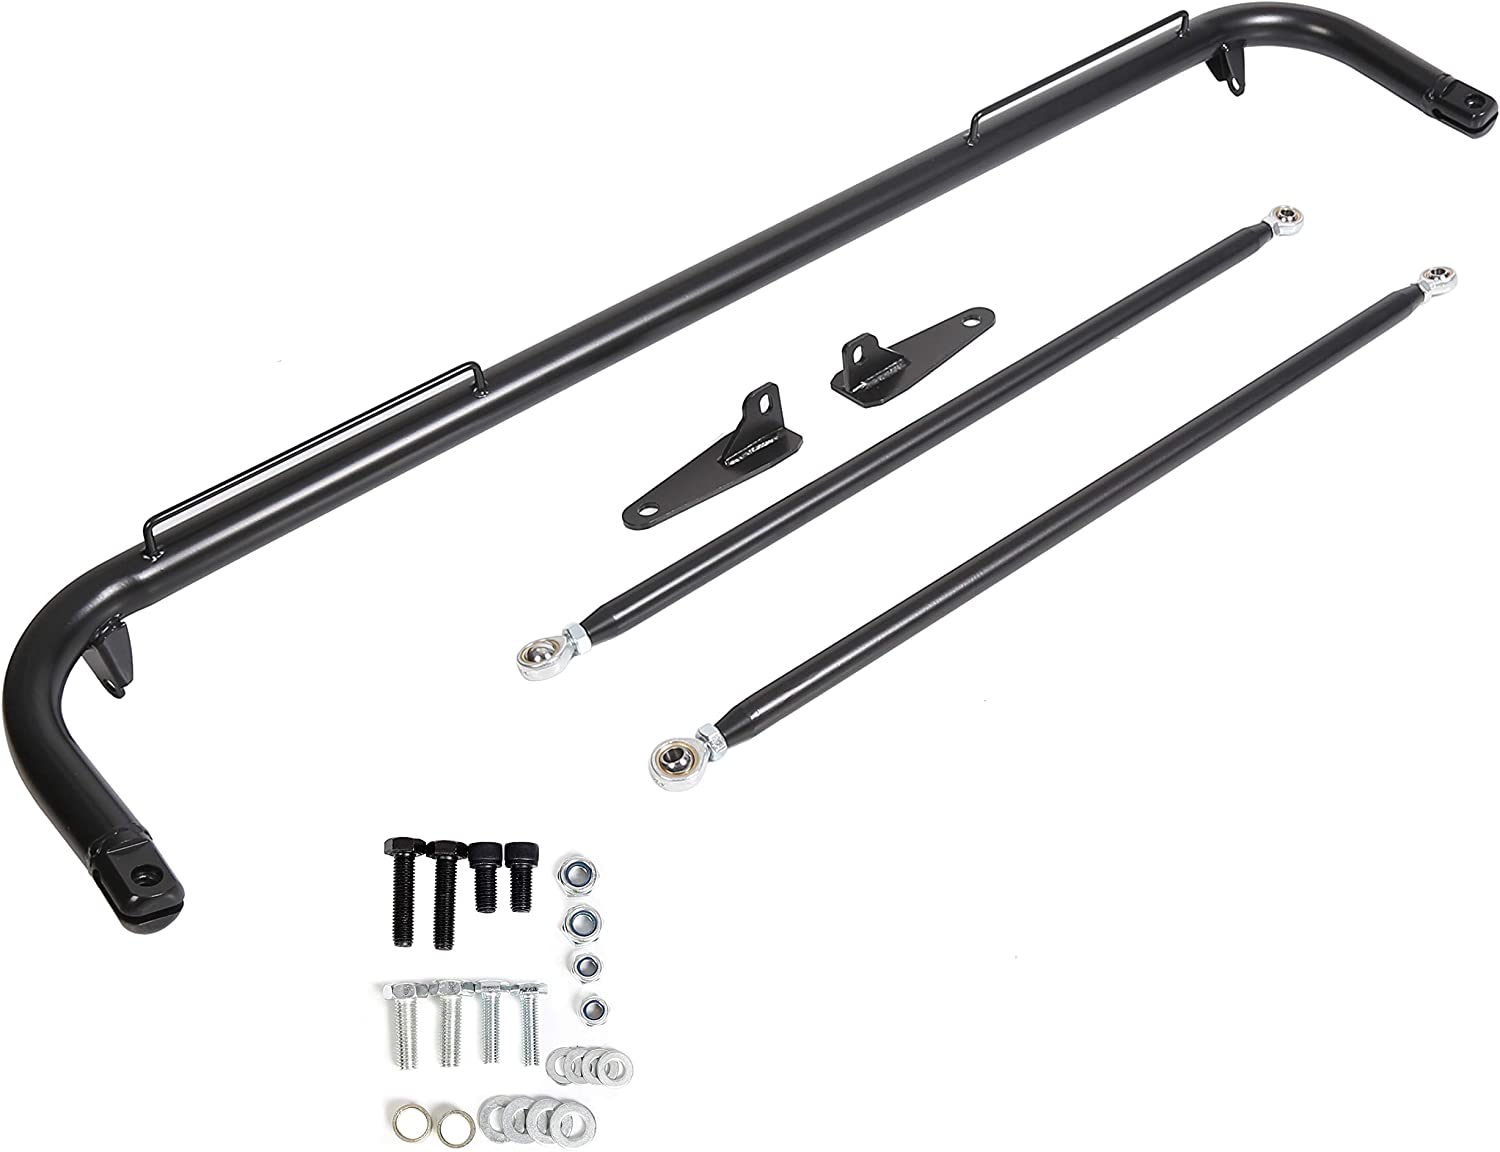 Blue JMTAAT 49 Universal Stainless Steel Racing Safety Seat Belt Harness Bar Chassis Roll Kit rod Works with All 4-Point 5-Point and 6-Point Seat Belts for Subaru Nissan Ford Honda Mitsubishi